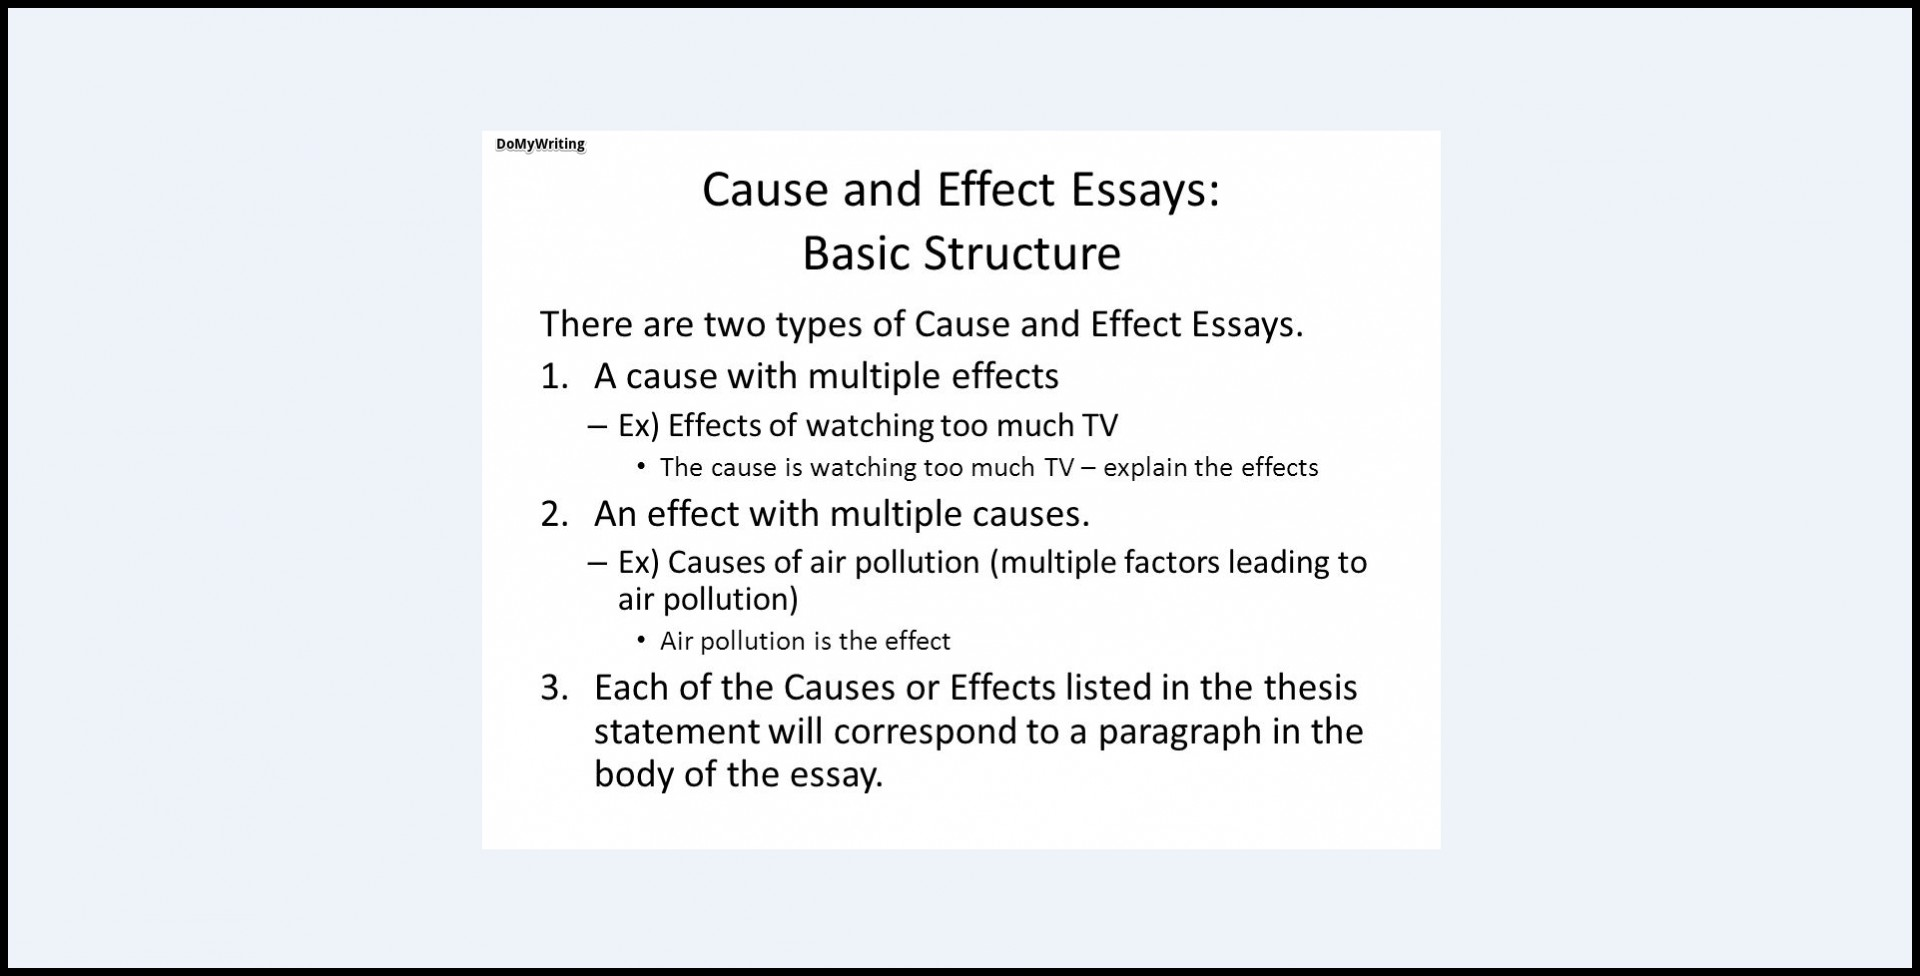 013 Cause And Effect Essay Topics Structure Dreaded Thesis Statement For On Bullying Examples 6th Grade Example Pollution 1920